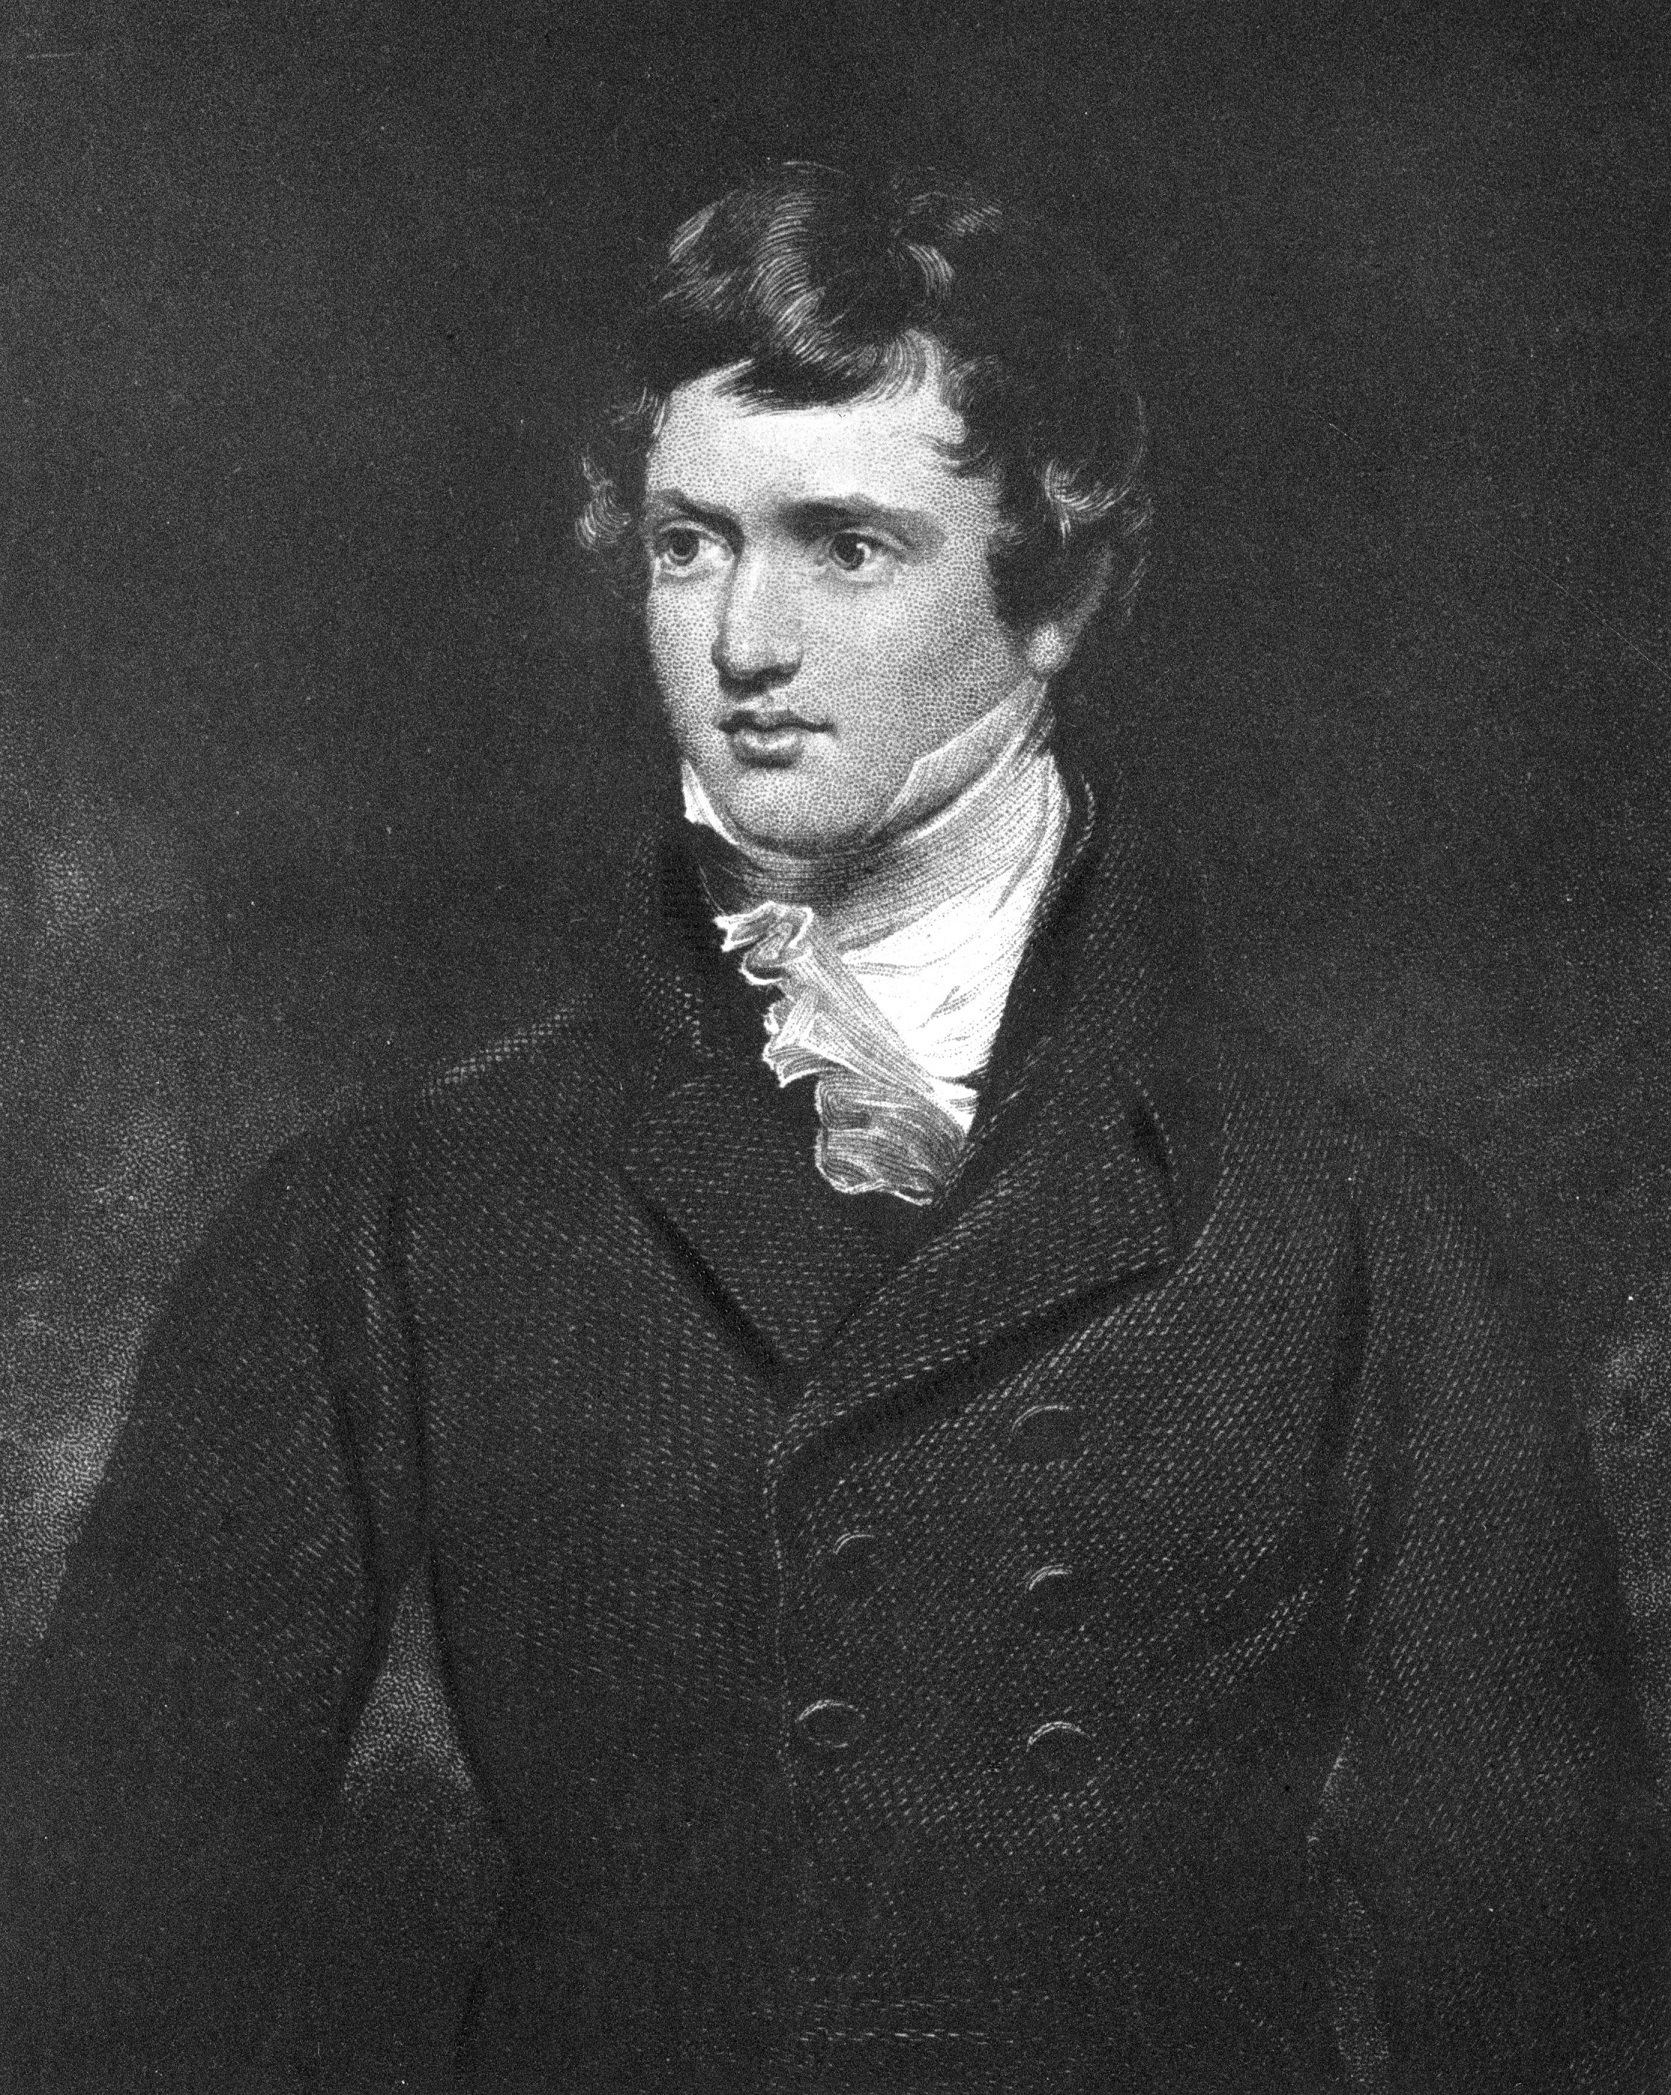 Edward Geoffrey Smith Stanley Derby (1799 - 1869), 14th Earl of Derby